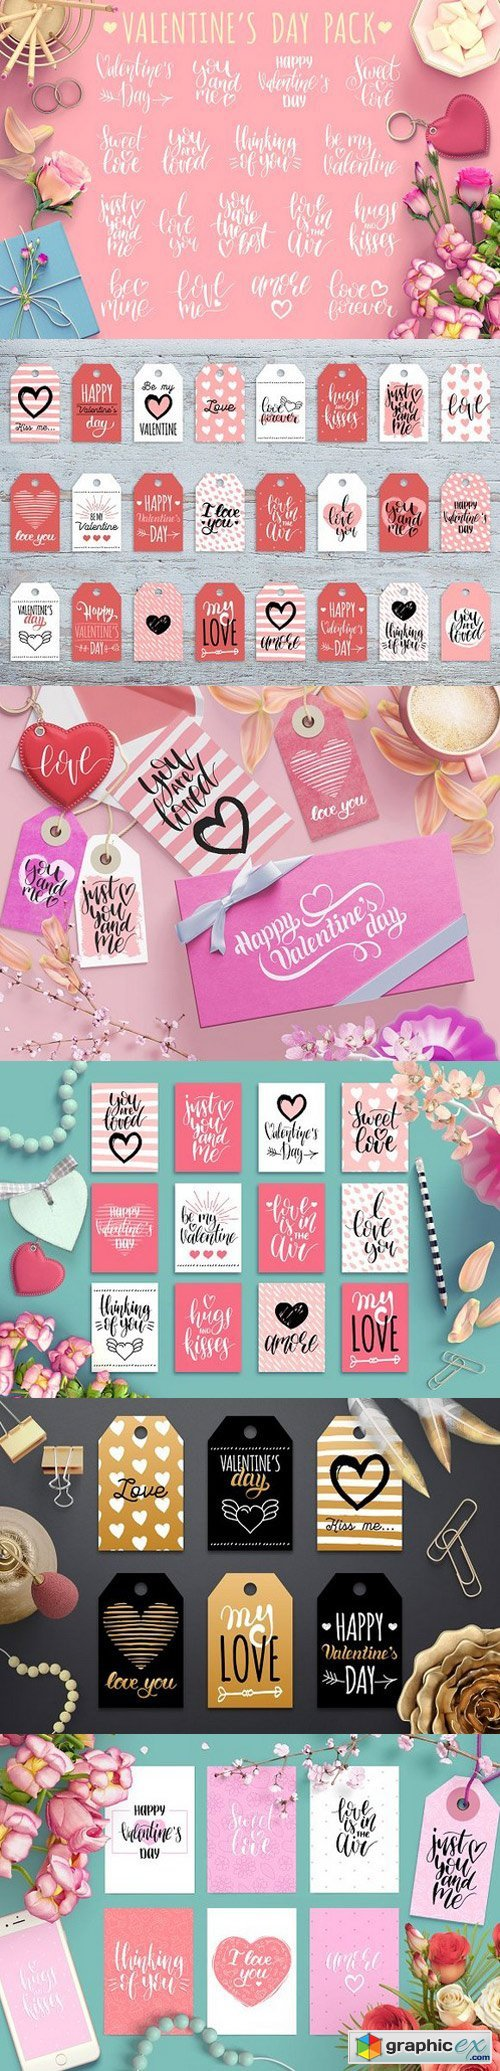 Valentine's day lettering and cards